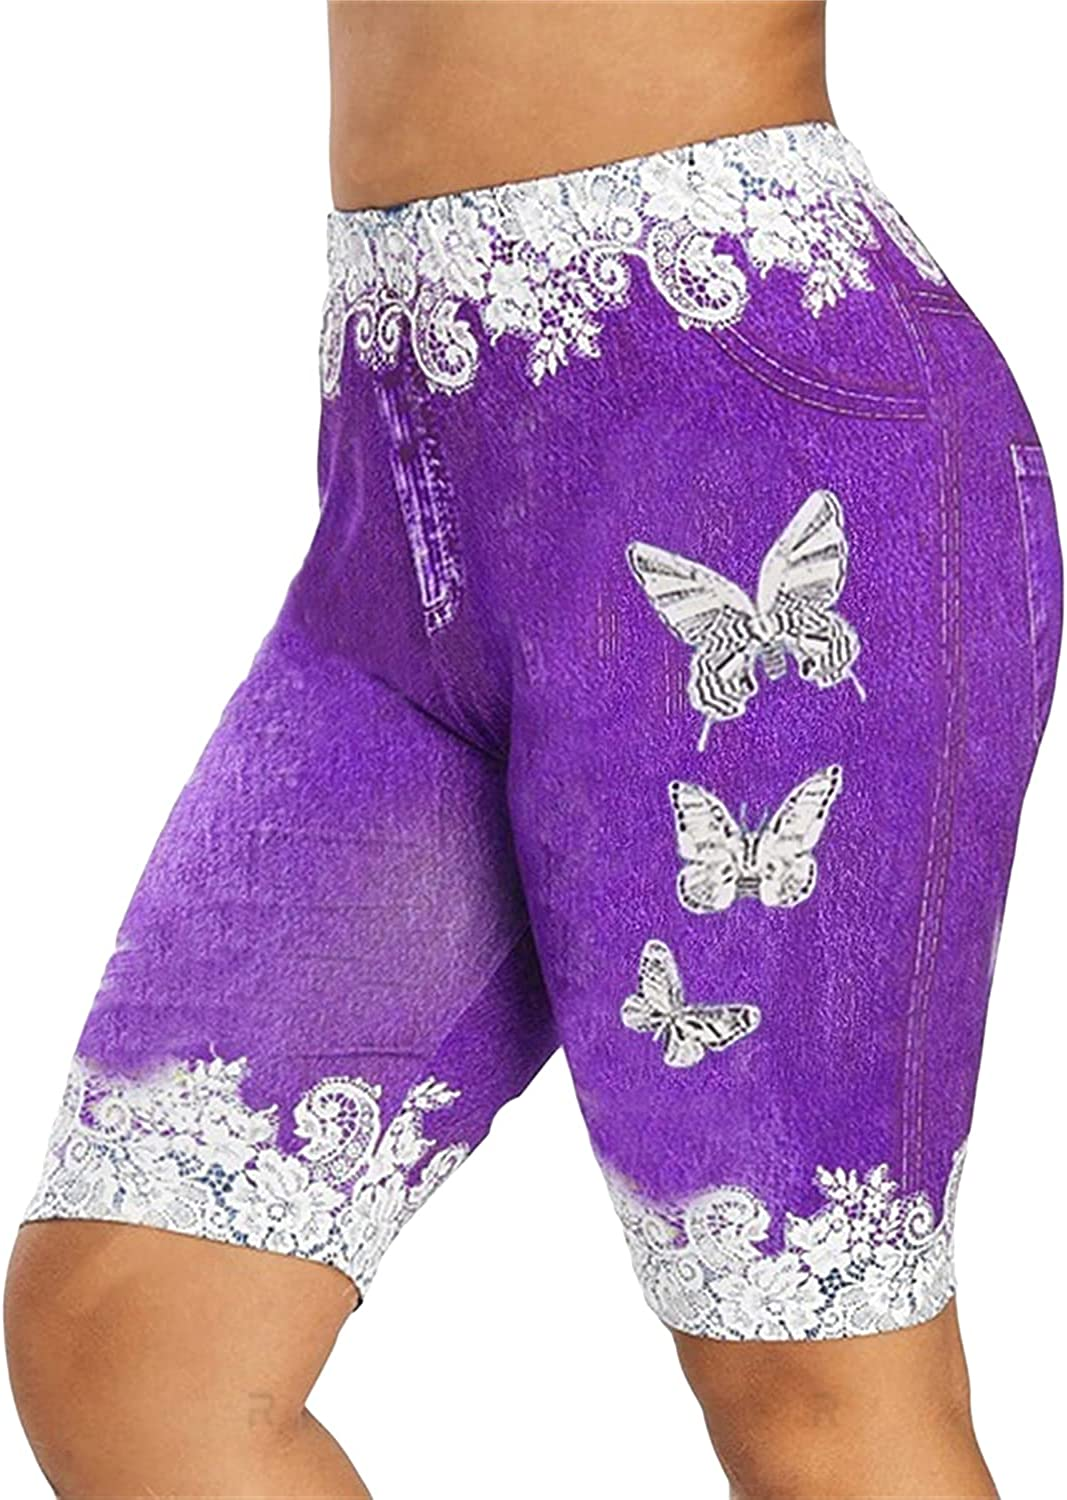 Women's Rare Printed Legging Short Jeans Butterfly Outlet sale feature Bermud Knee Length